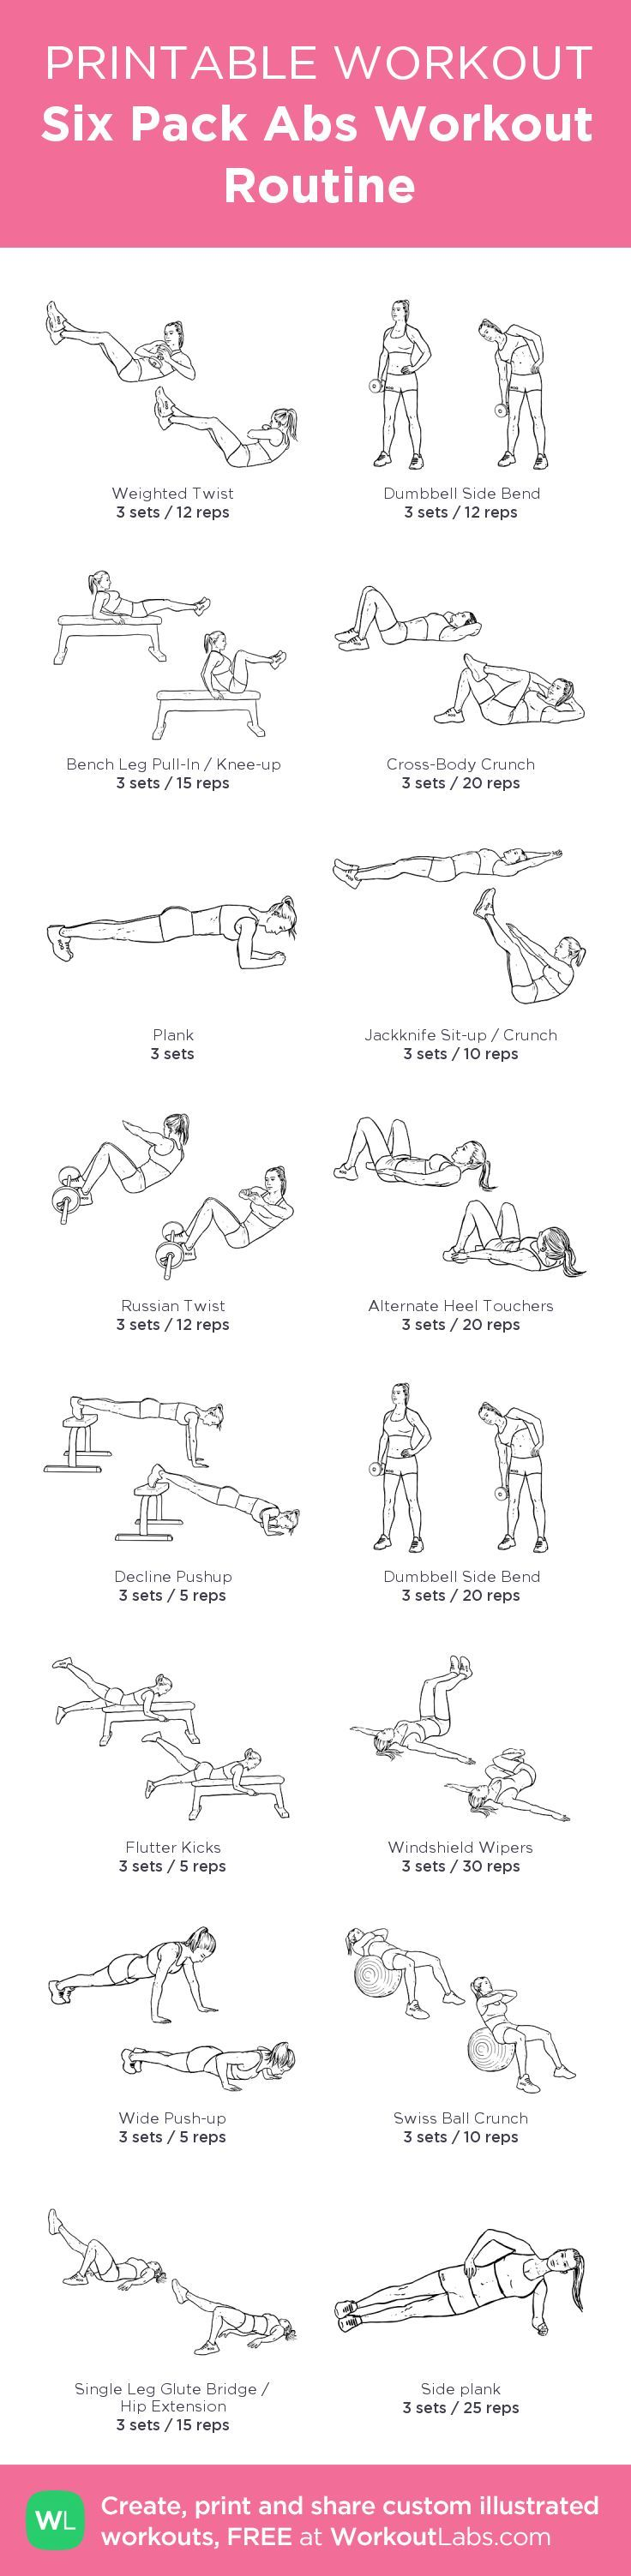 graphic relating to Printable Workout Routine identify Health and fitness Commitment : 6 Pack Abdominal muscles Exercise Agenda: my customized